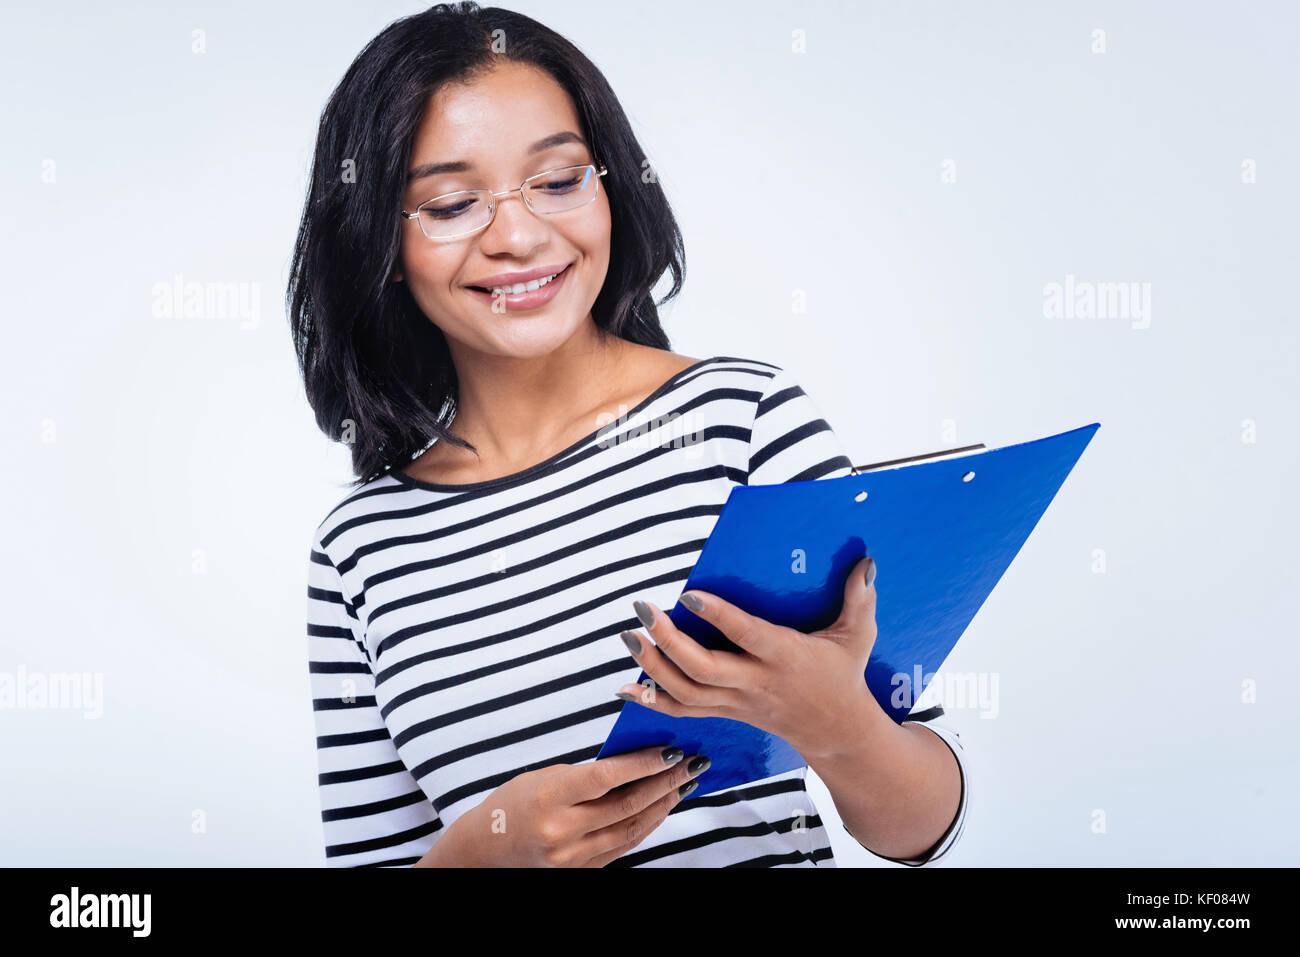 Upbeat woman studying documents in a blue sheet holder - Stock Image